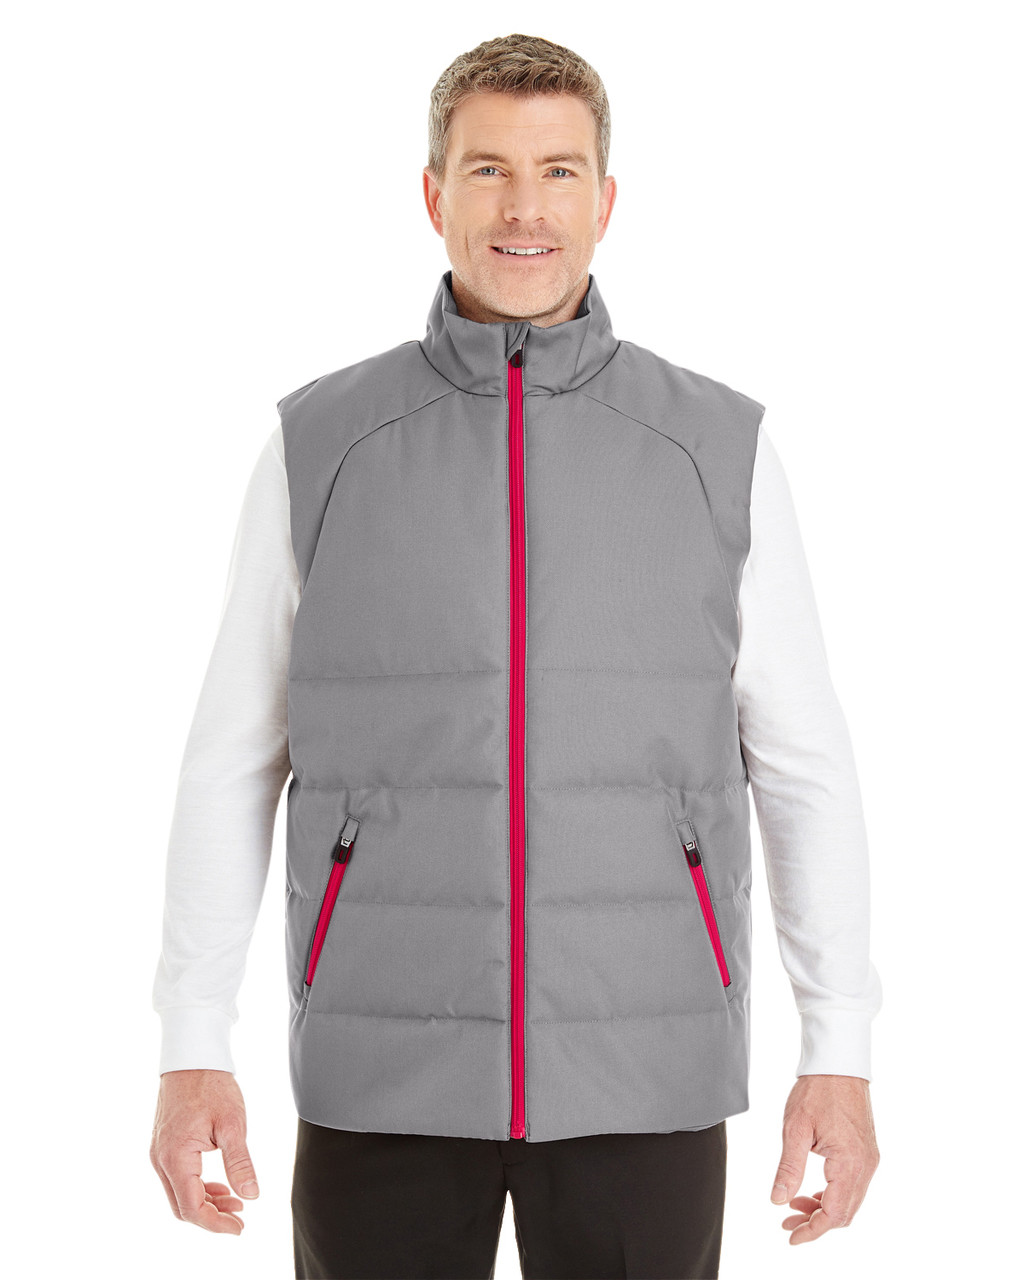 Graphite/Red - FRONT - NE702 North End Men's Engage Interactive Insulated Vest | Blankclothing.ca